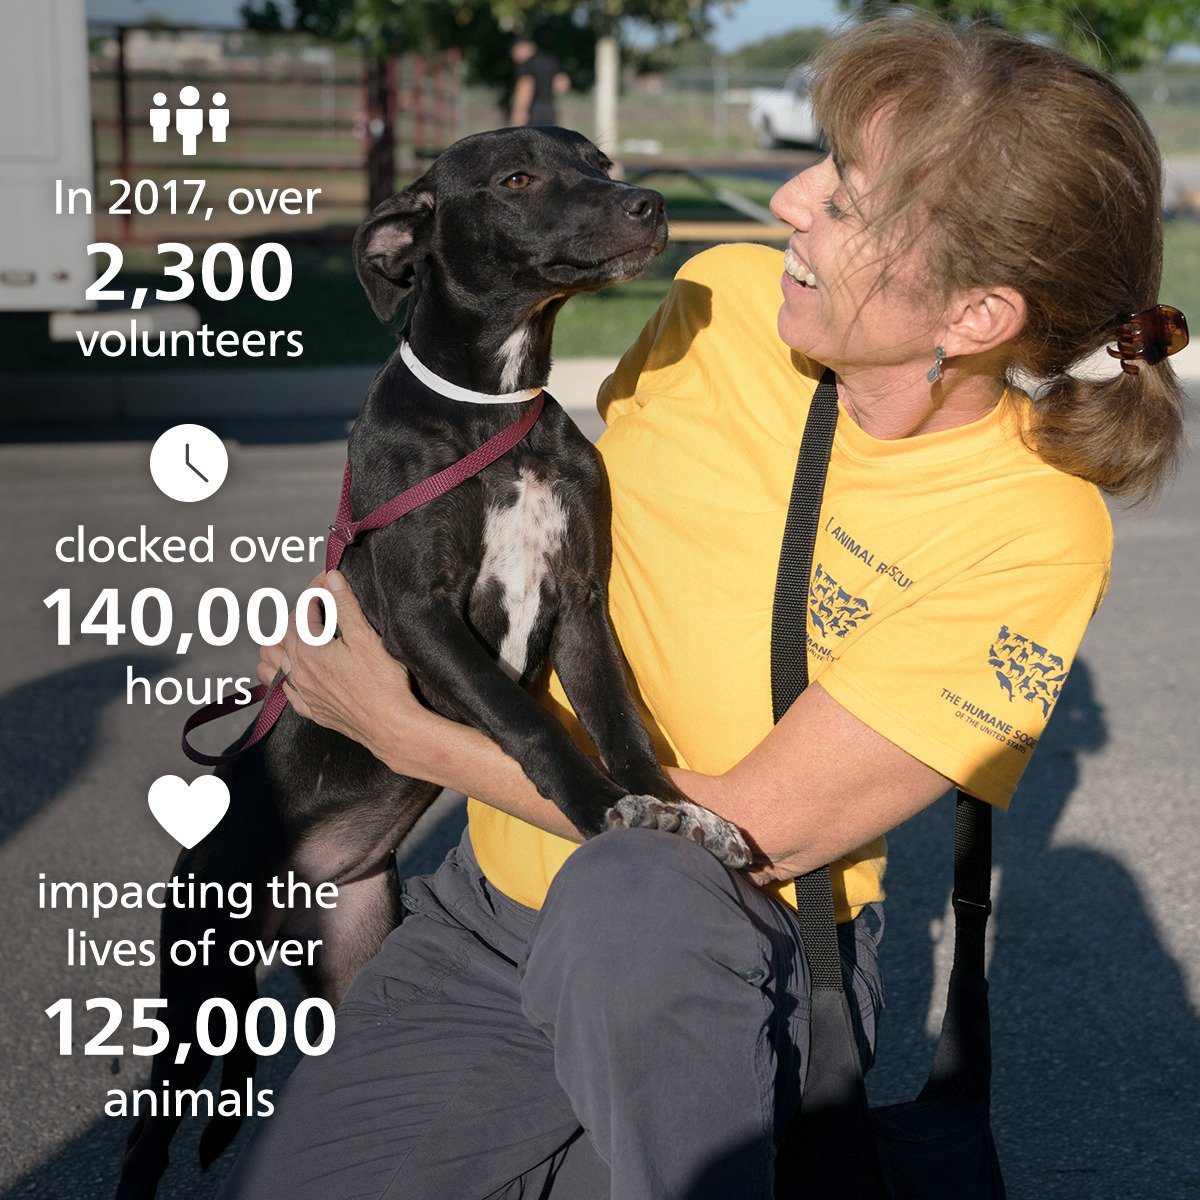 We&#39;re eternally grateful to our volunteers! Thanks to them, the lives of more than 125,000 animals were impacted for the better in 2017.  #NationalVolunteerWeek <br>http://pic.twitter.com/VhBVqOi55x